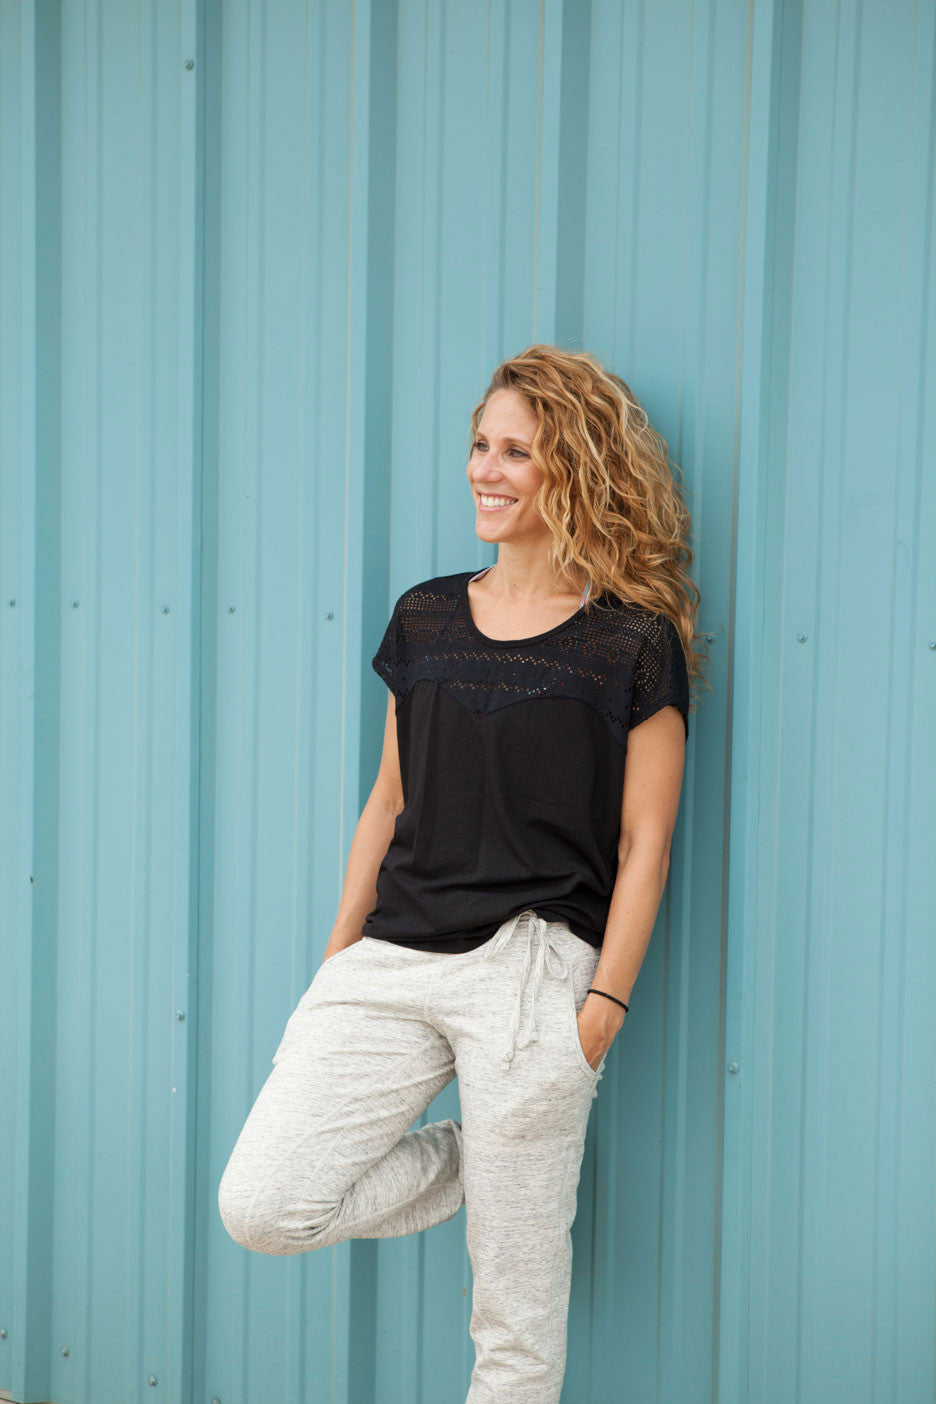 Tonic Active Tribe Member Kristen Hawkinson Lifestyle